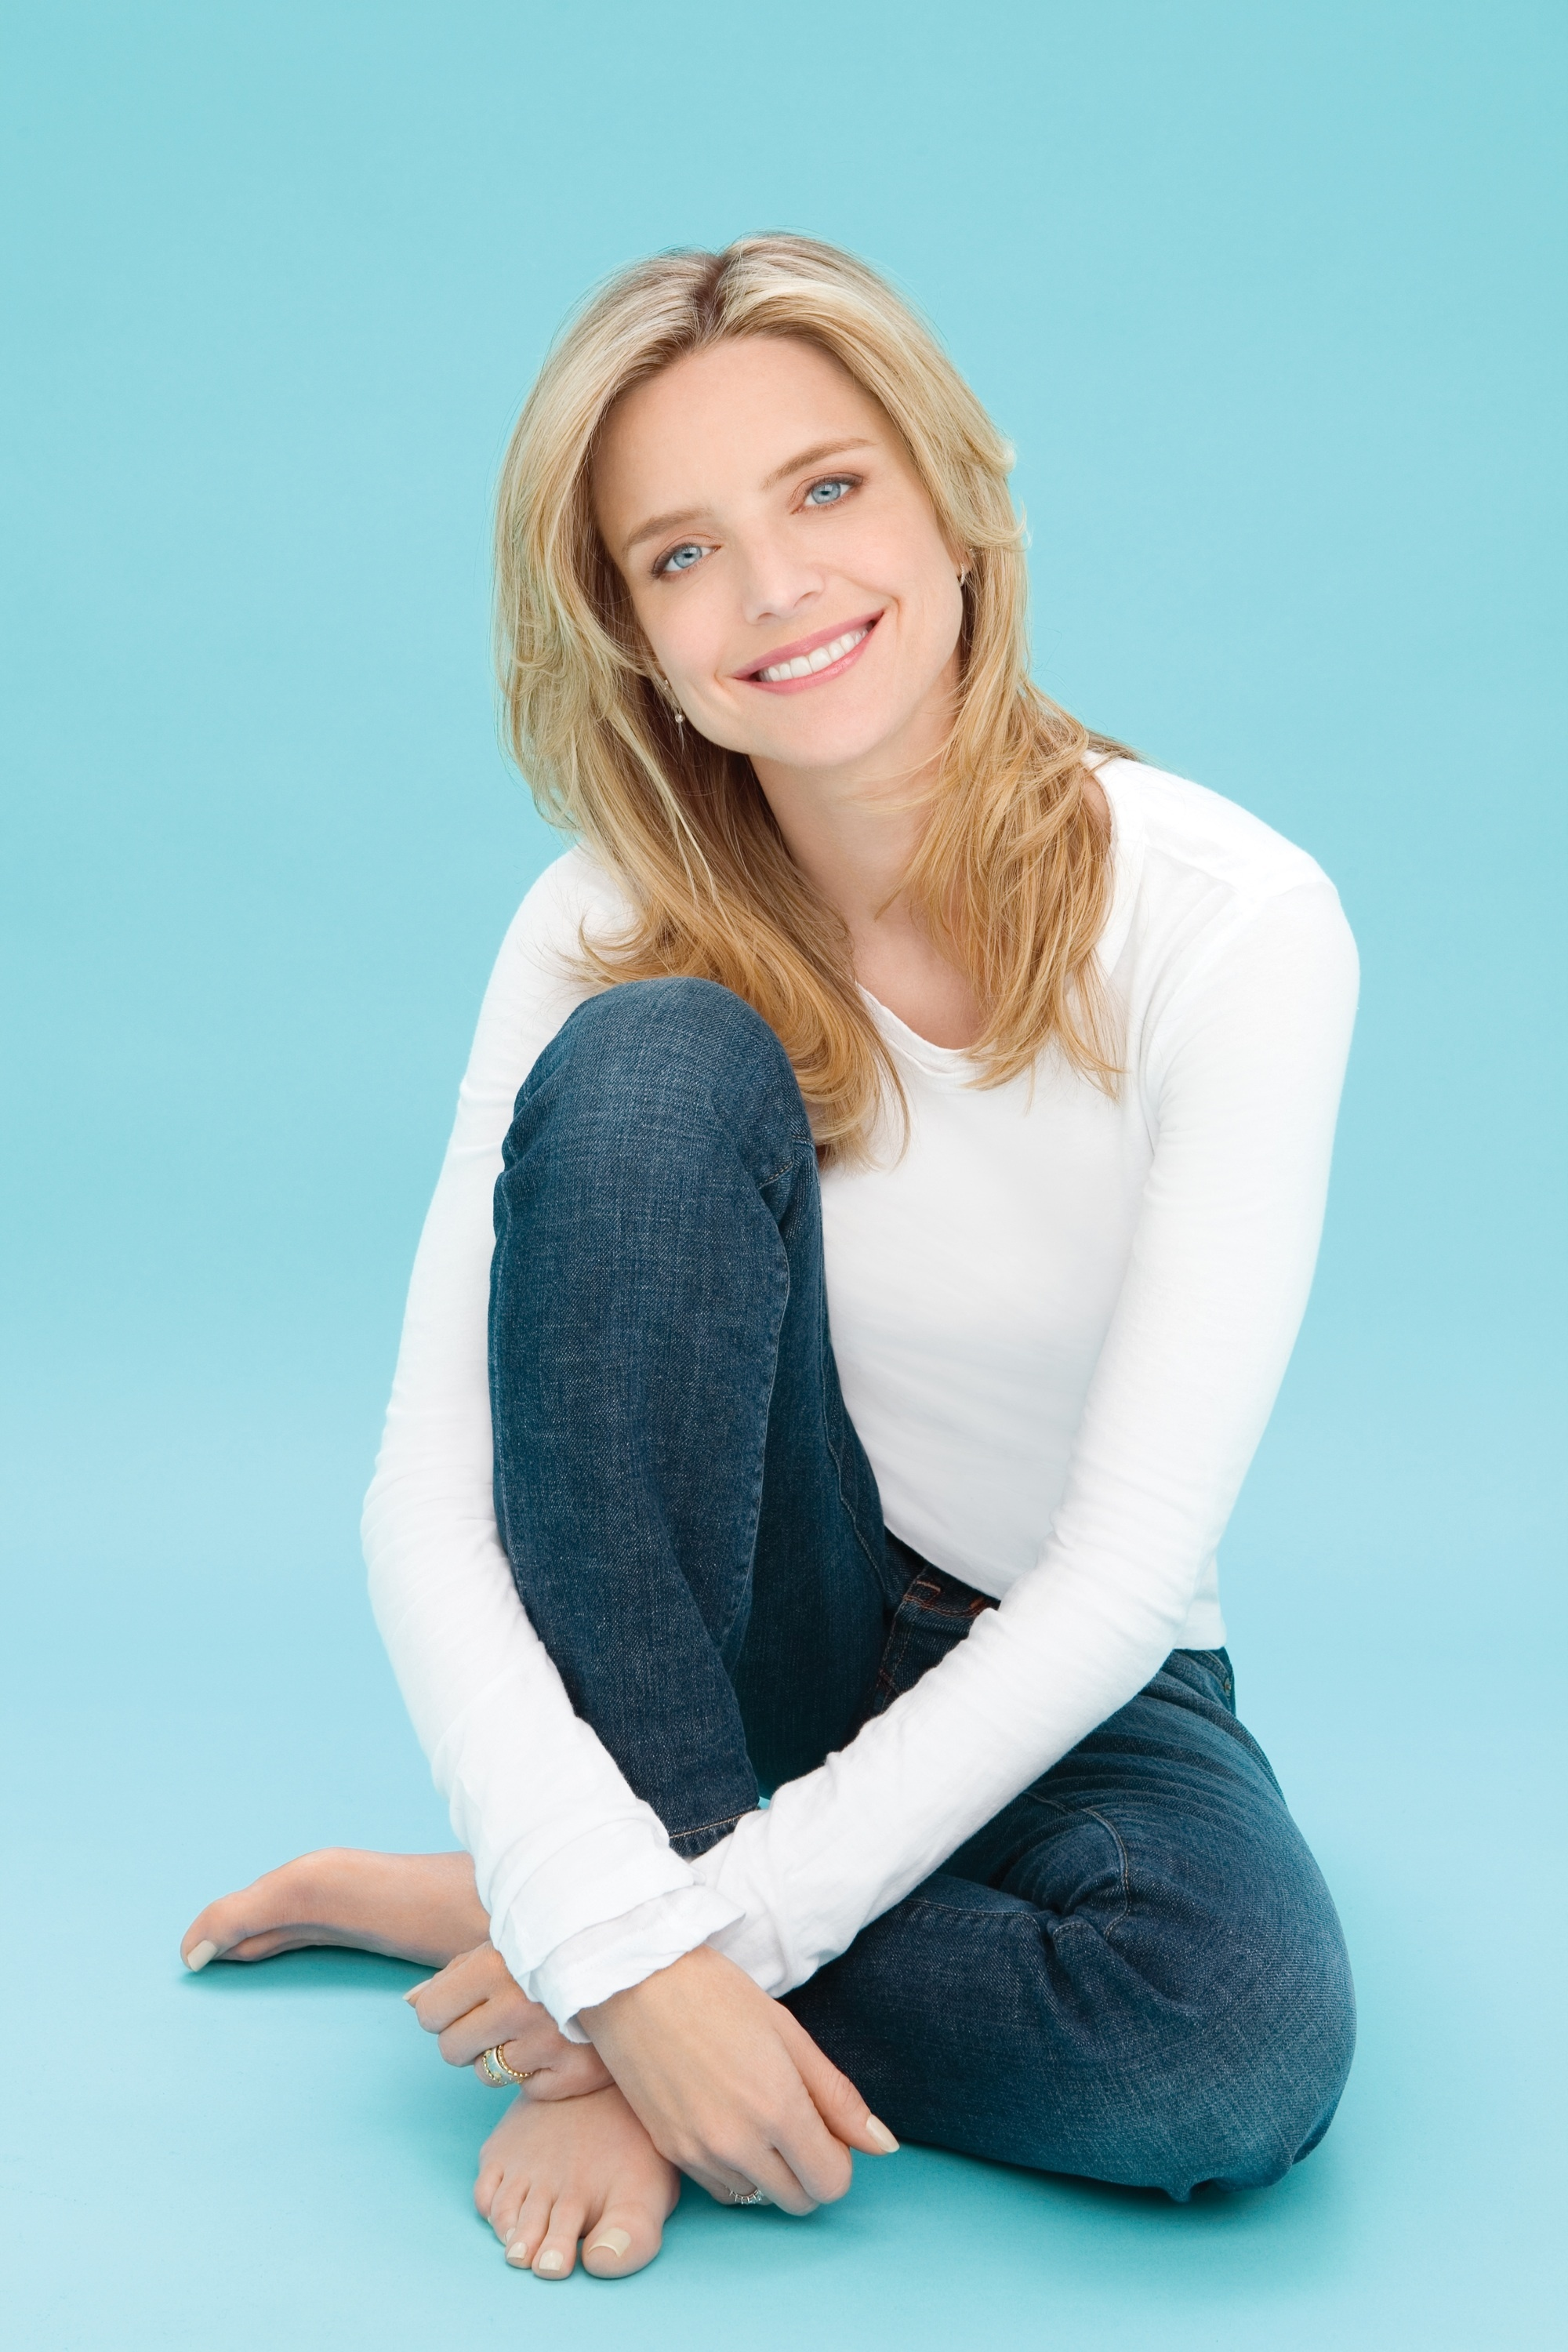 Courtney Thorne Smith 39 S Feet